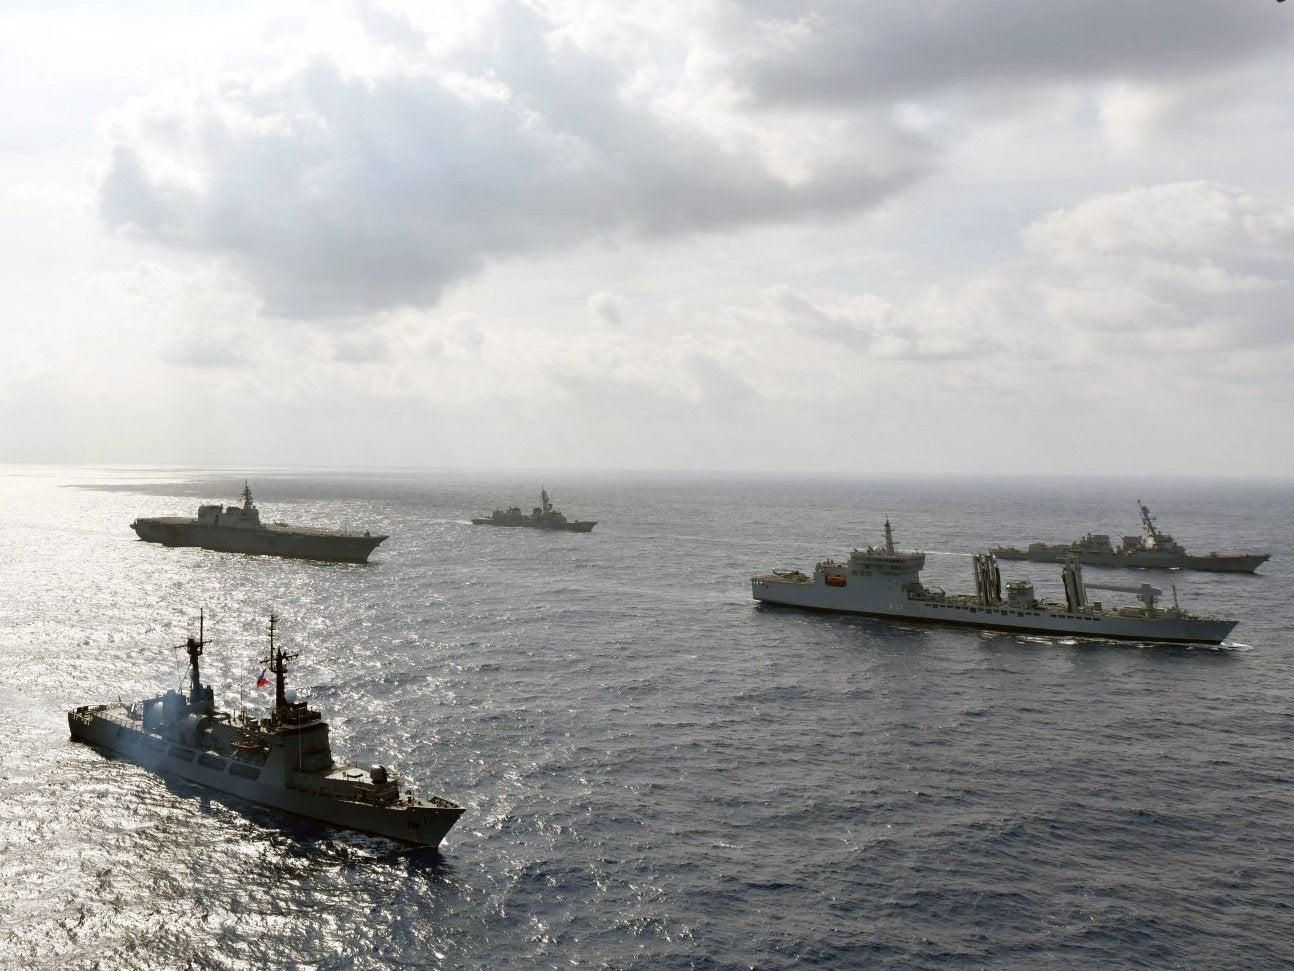 South China Sea - latest news, breaking stories and comment